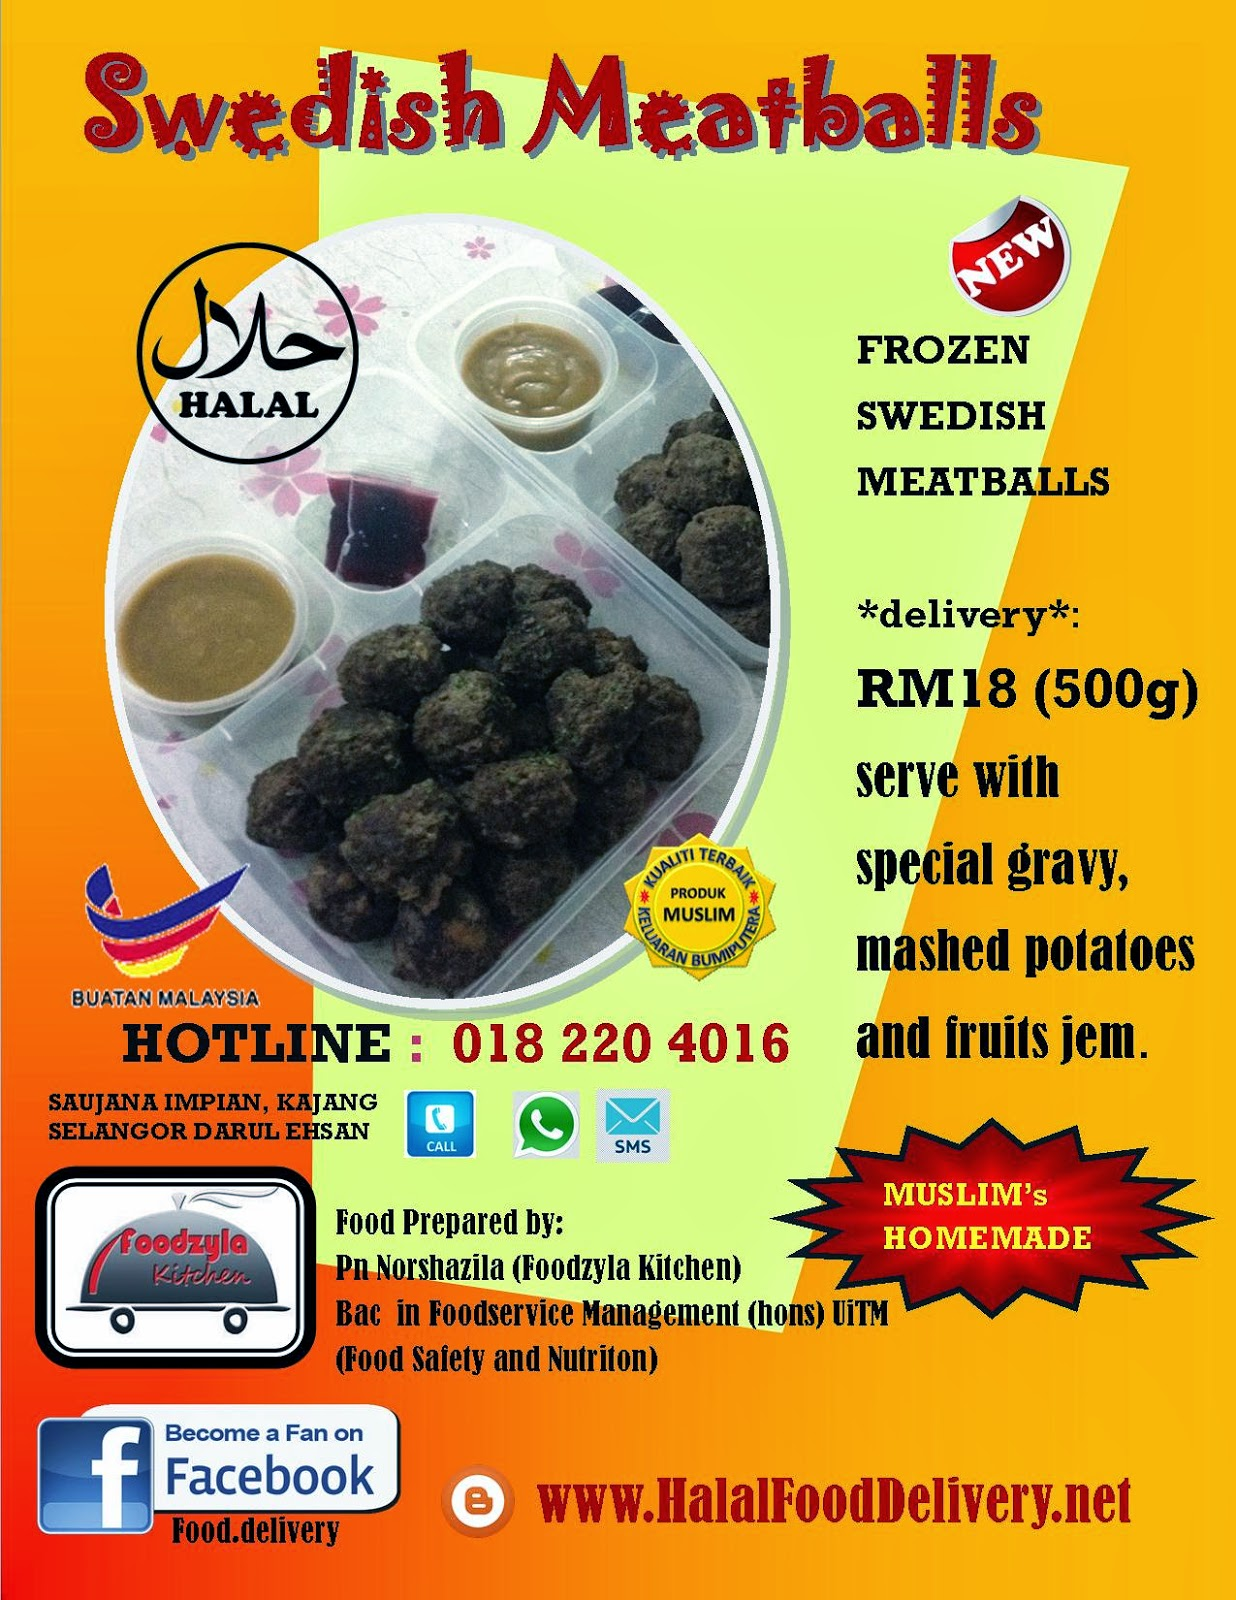 FROZEN Swedish Meatballs